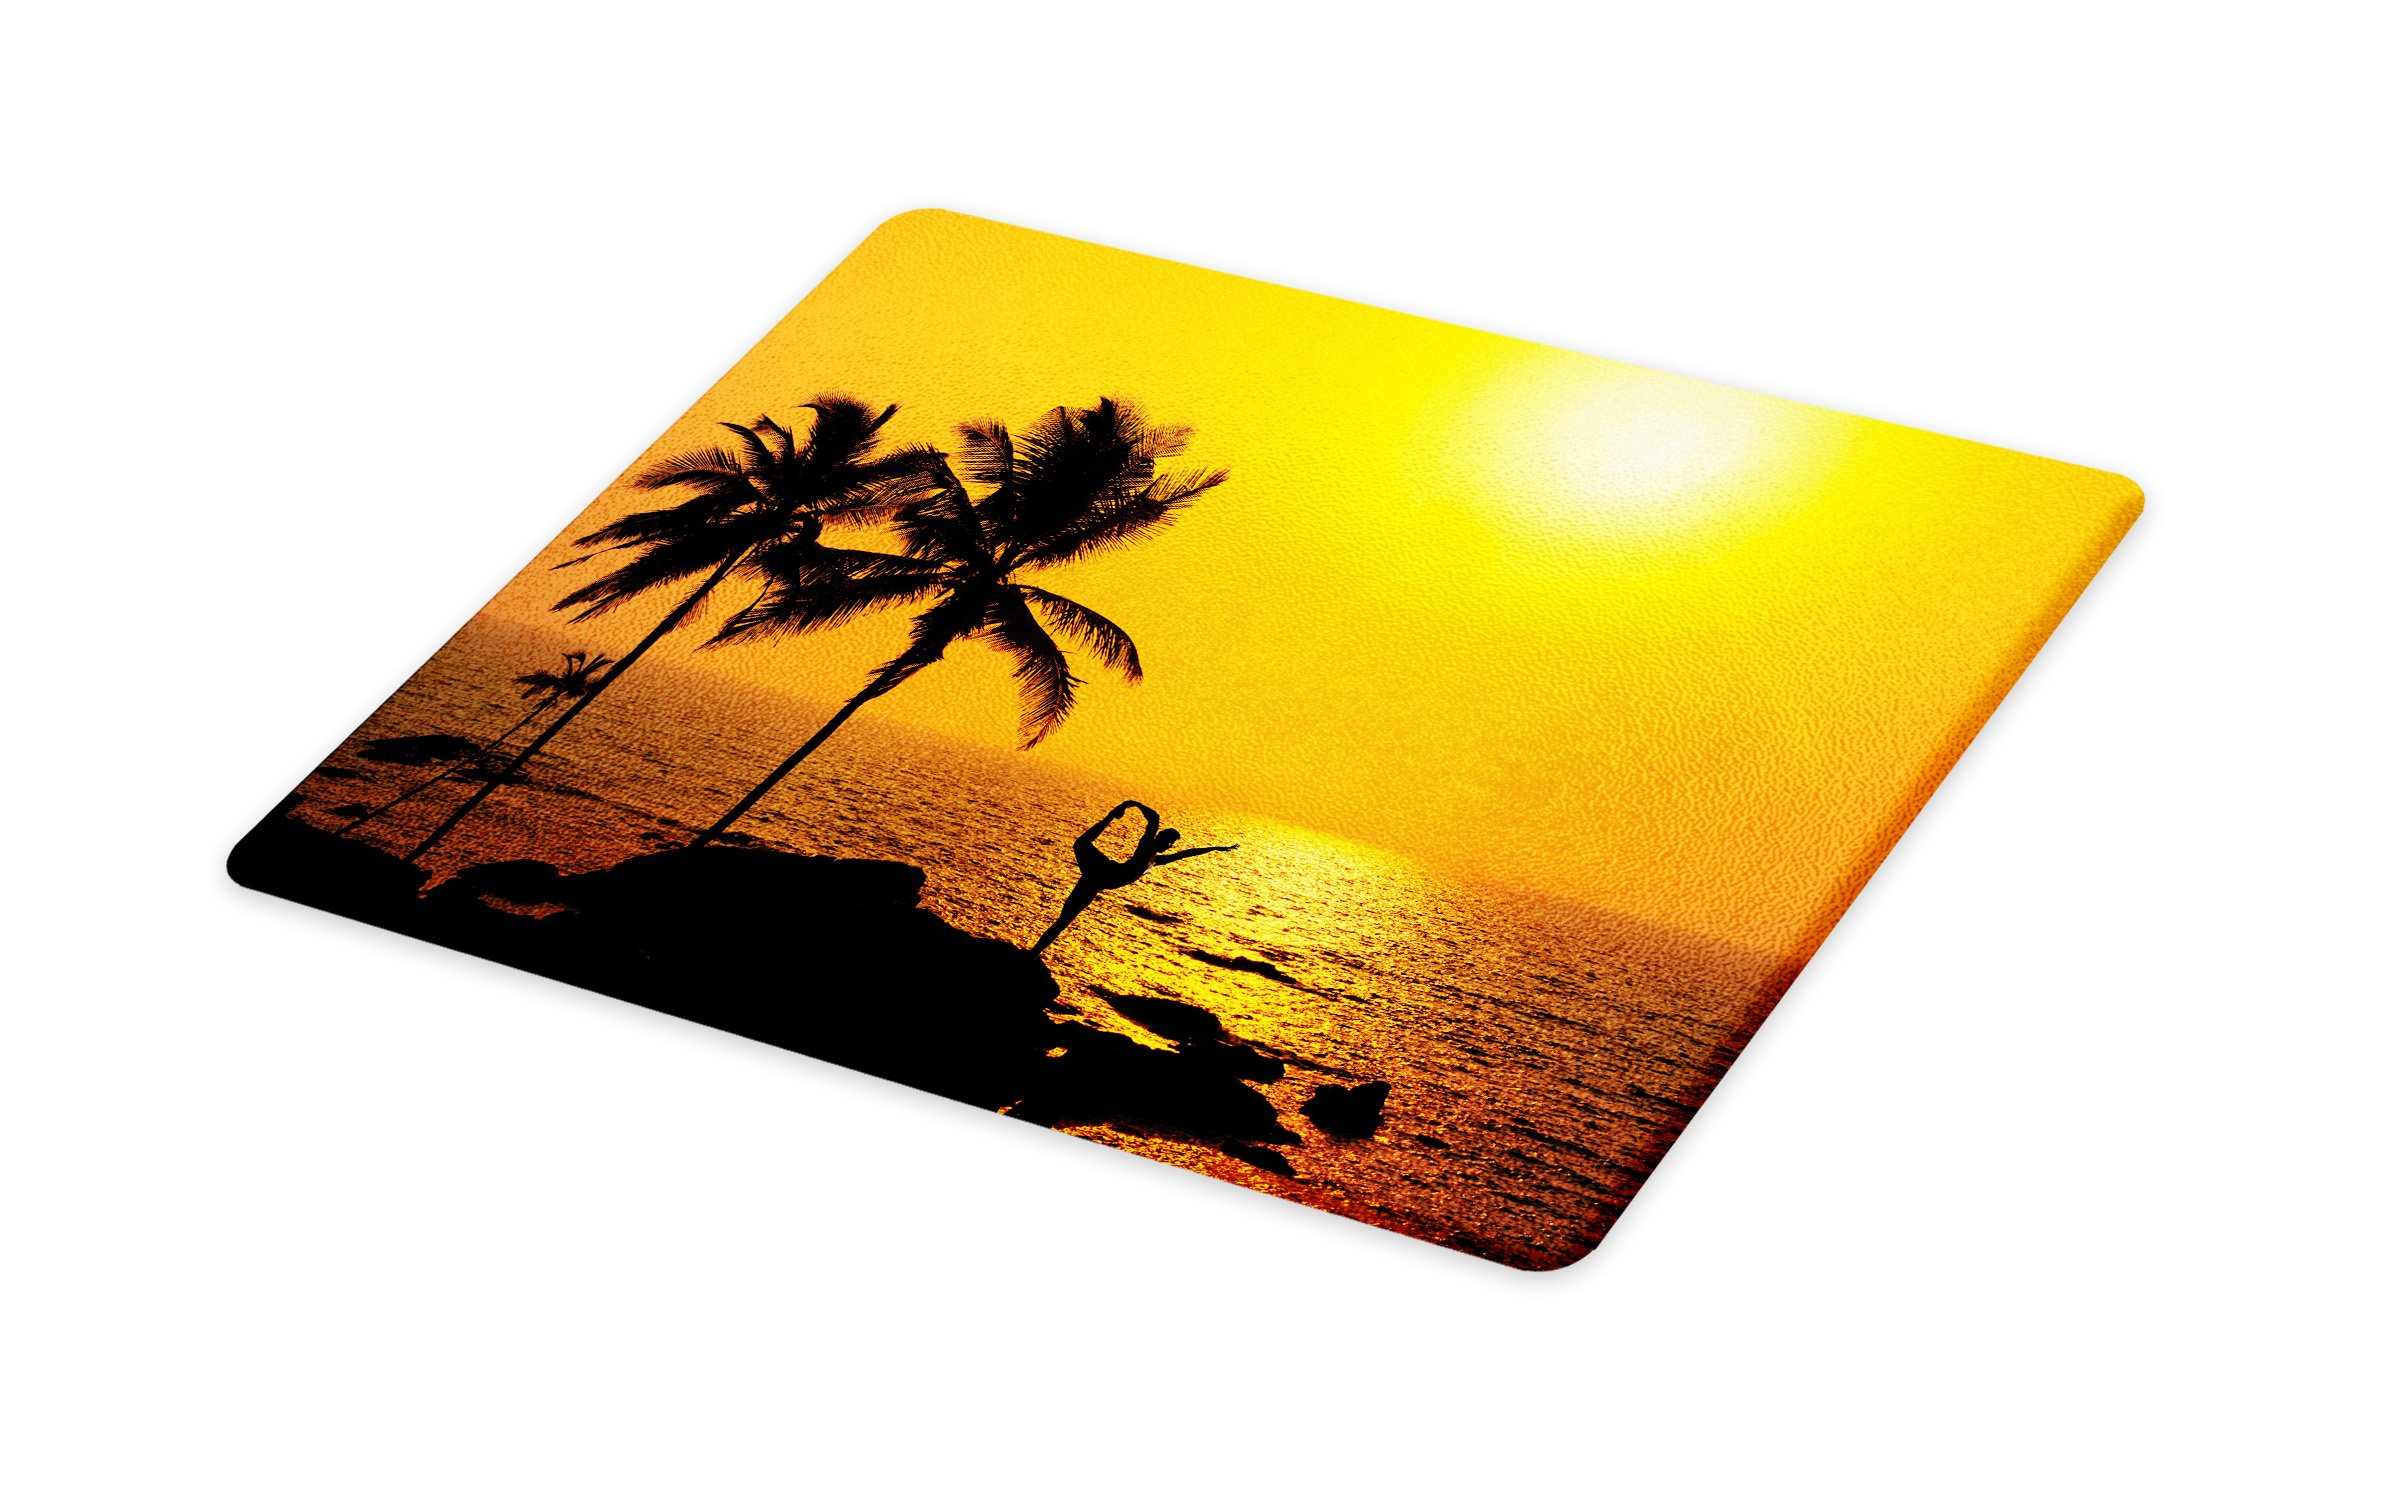 Lunarable Yoga Cutting Board, Yoga Dance Move Dancer Balancing Pose Palm Tree at Ocean Sunset Background, Decorative Tempered Glass Cutting and Serving Board, Small Size, Dark Brown Marigold by Lunarable (Image #1)